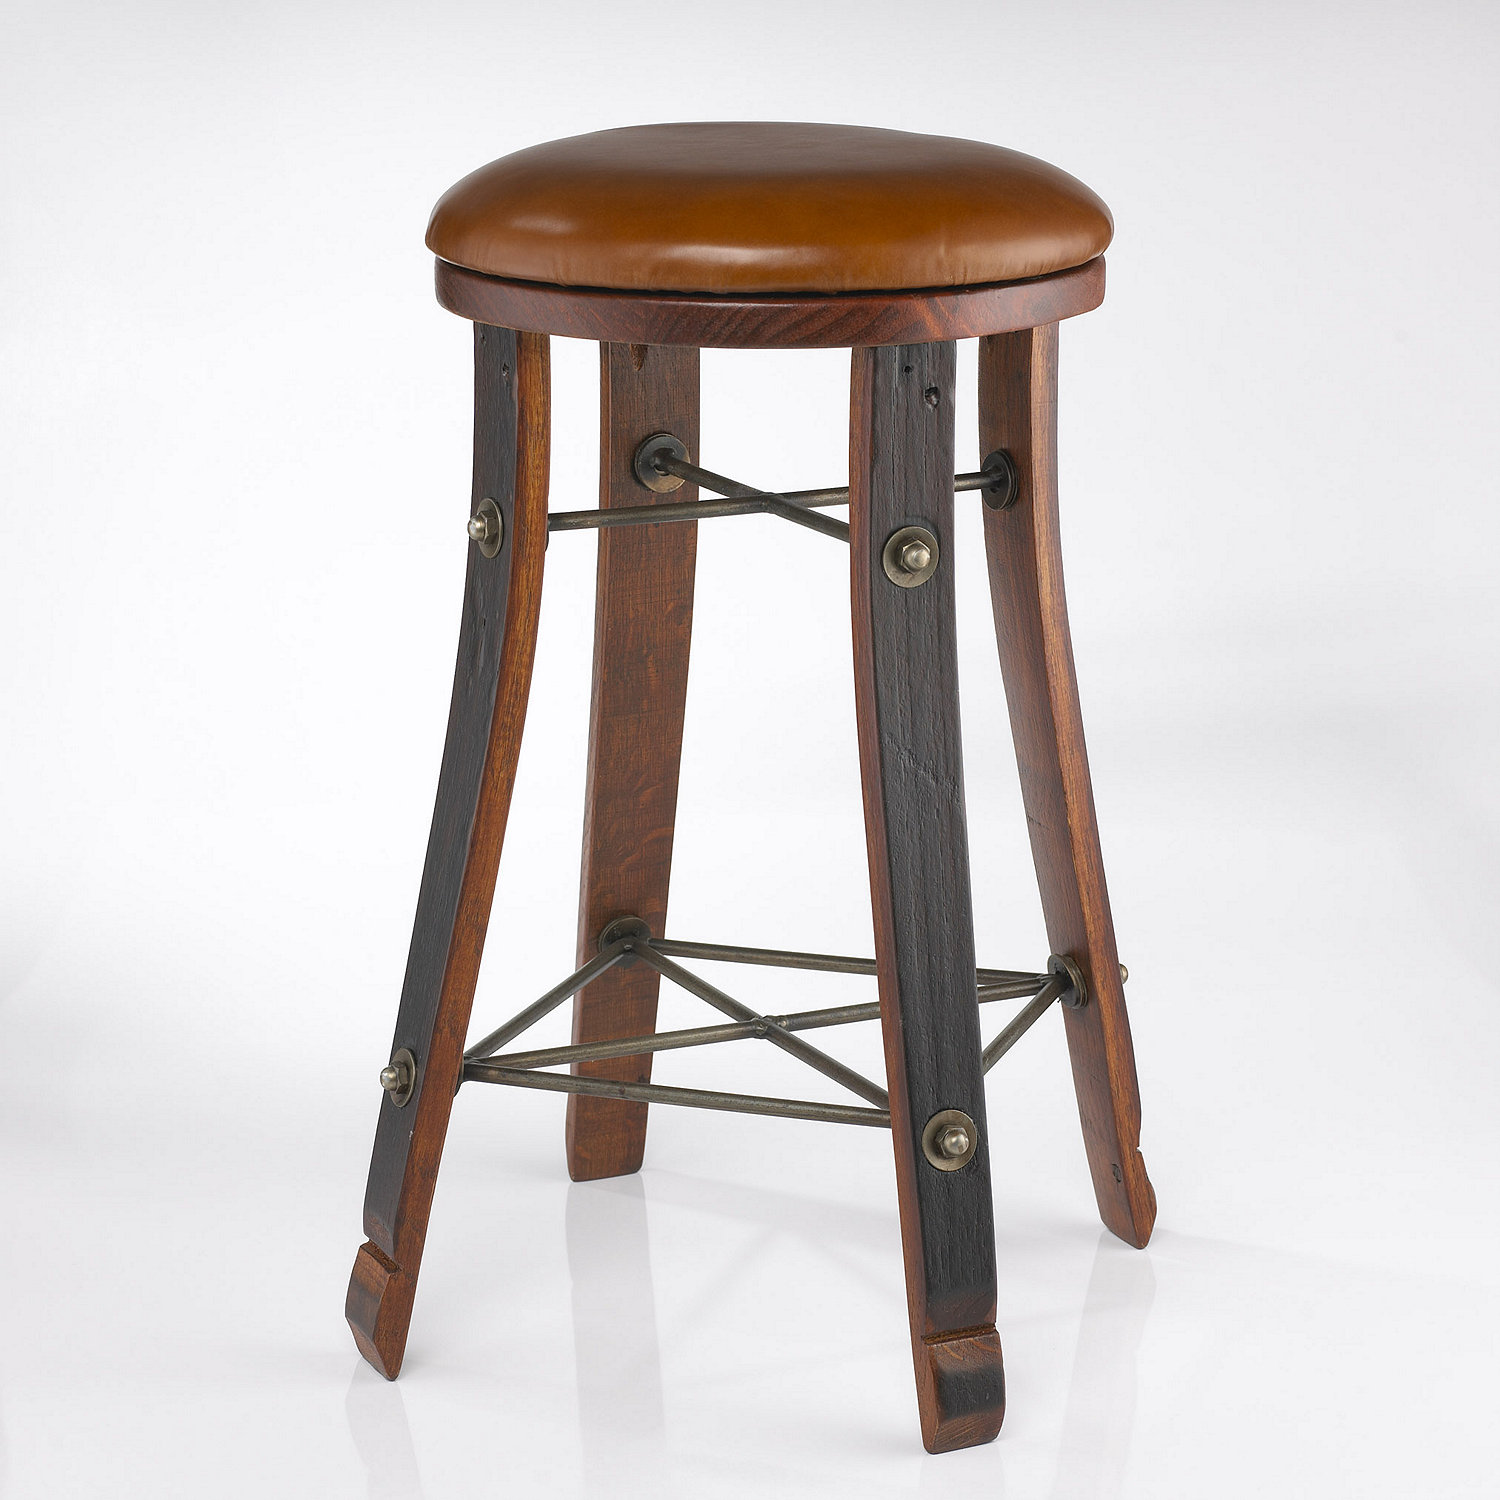 Bar stool with leather seat preparing zoom